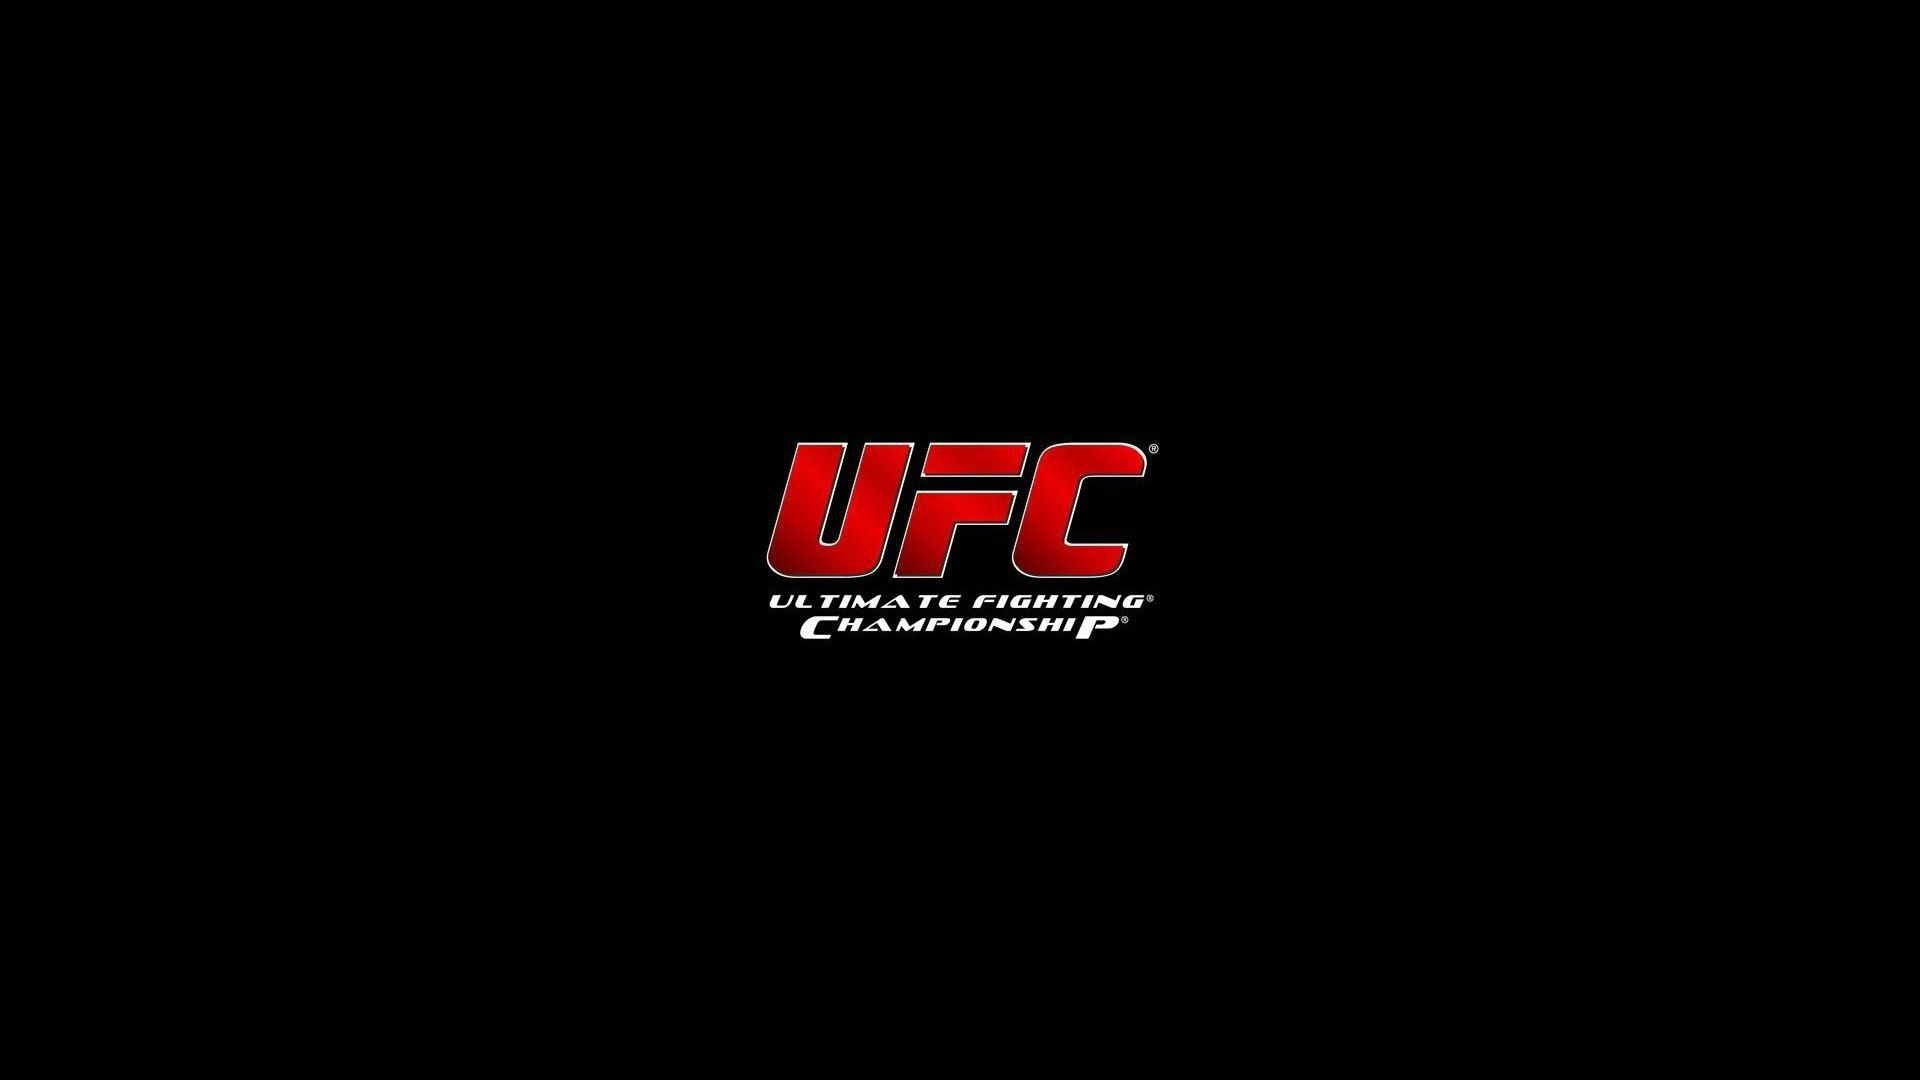 Ultimate Fighting Championship Logo Wallpaper 65632 1920x1080px